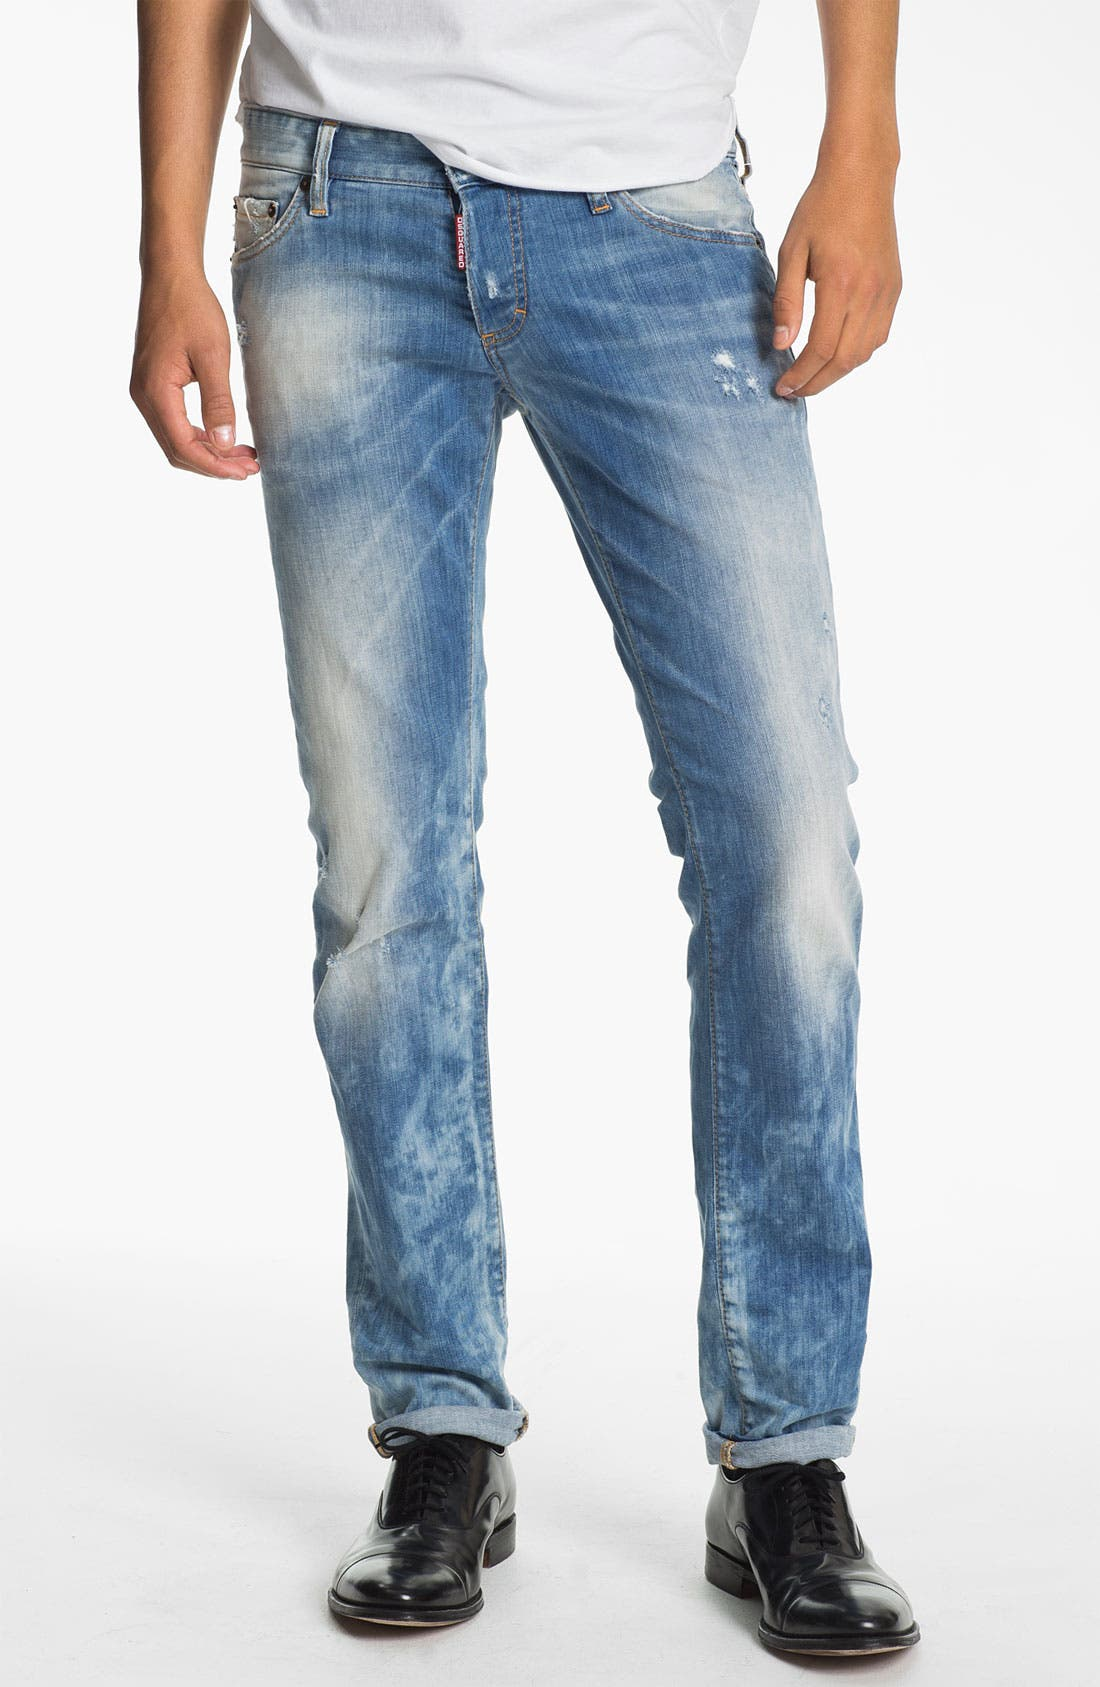 Alternate Image 1 Selected - Dsquared2 Slim Fit Jeans (Bleach Blue)